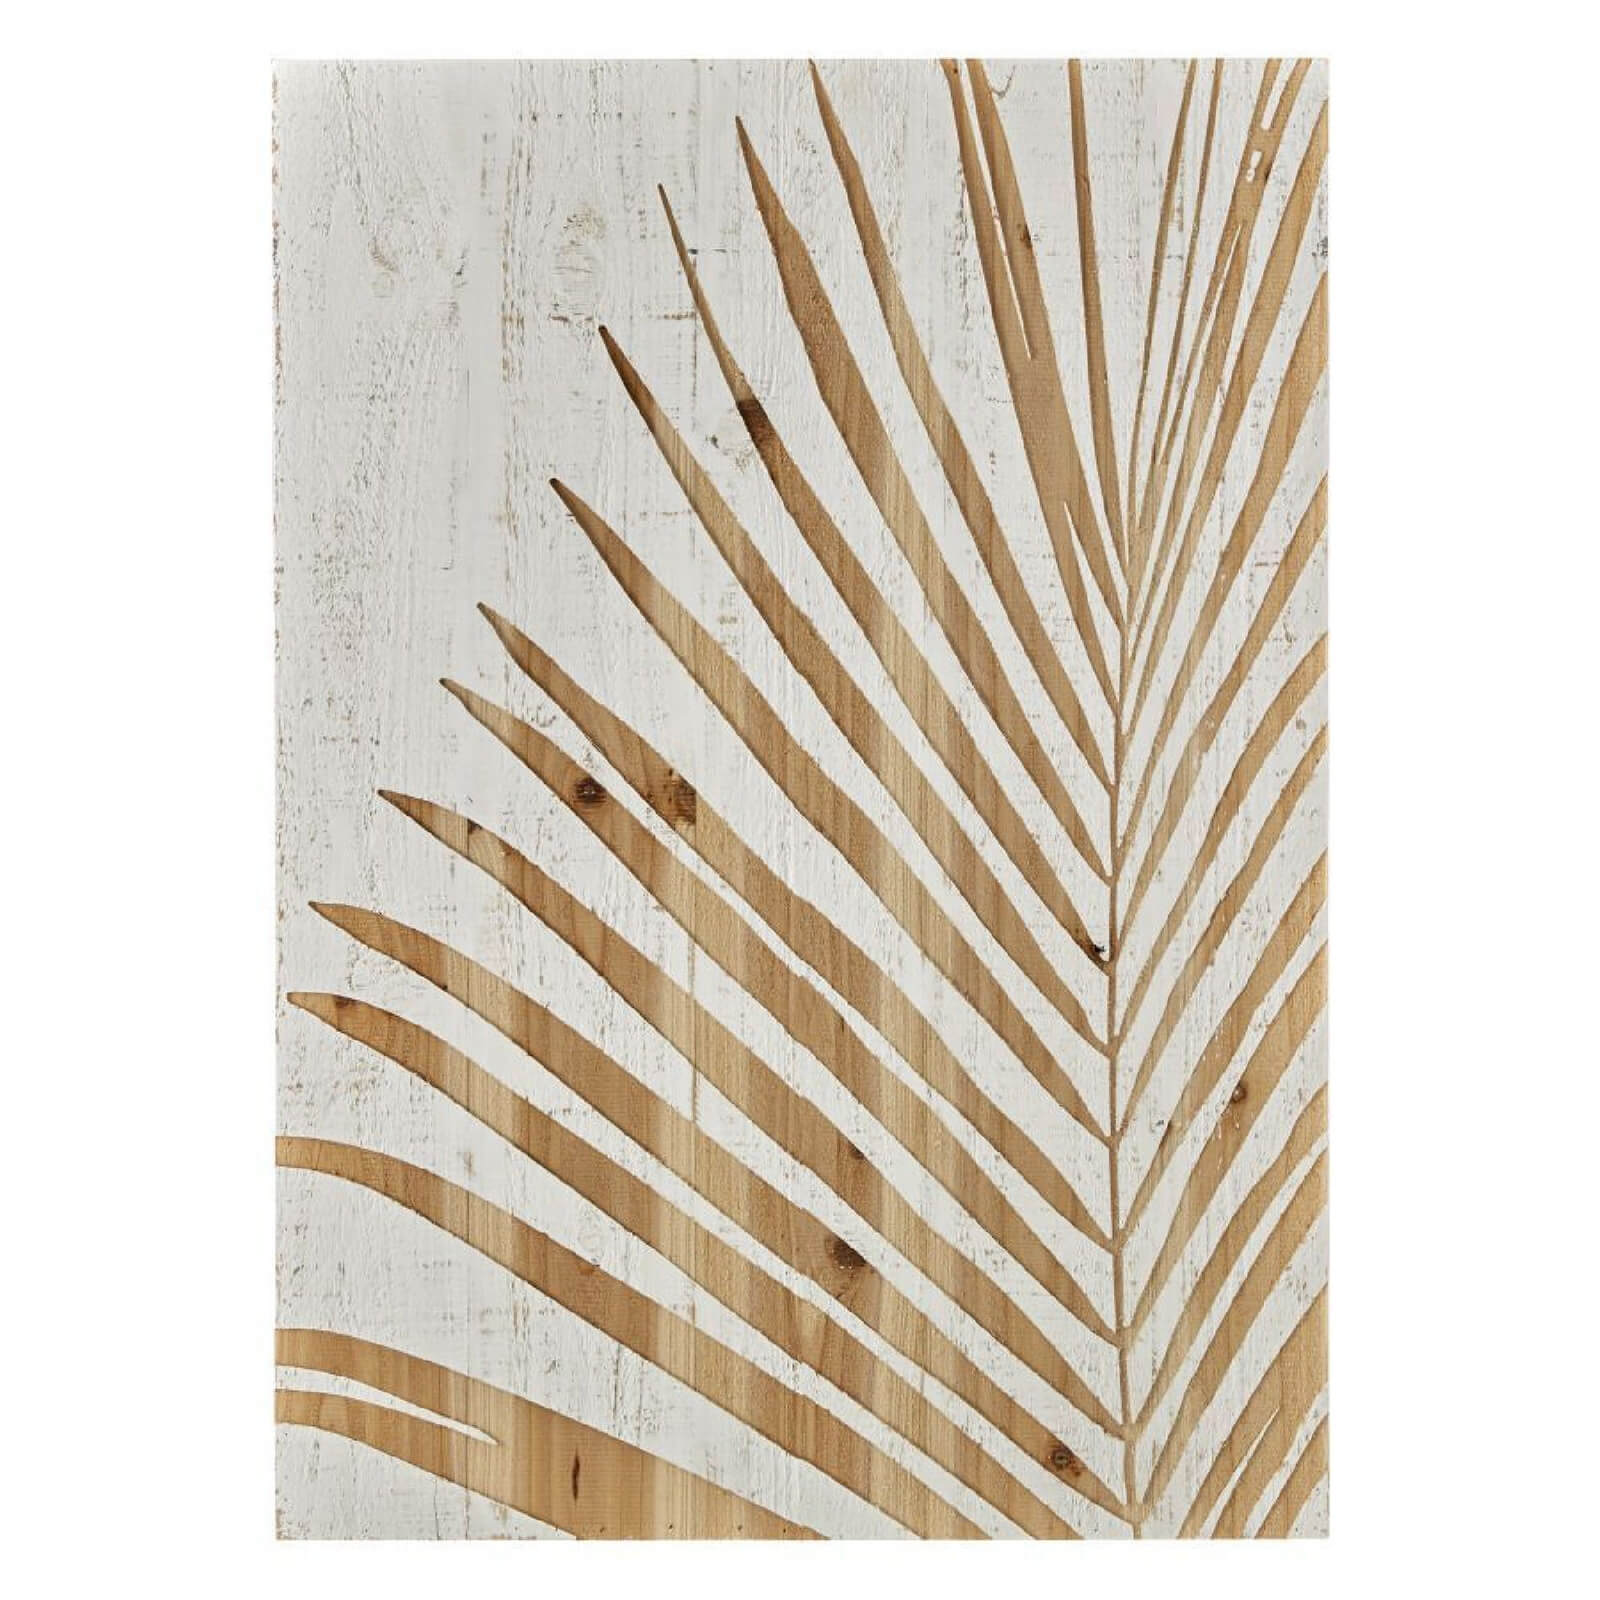 Art for the Home Palm Leaf Wood Panel